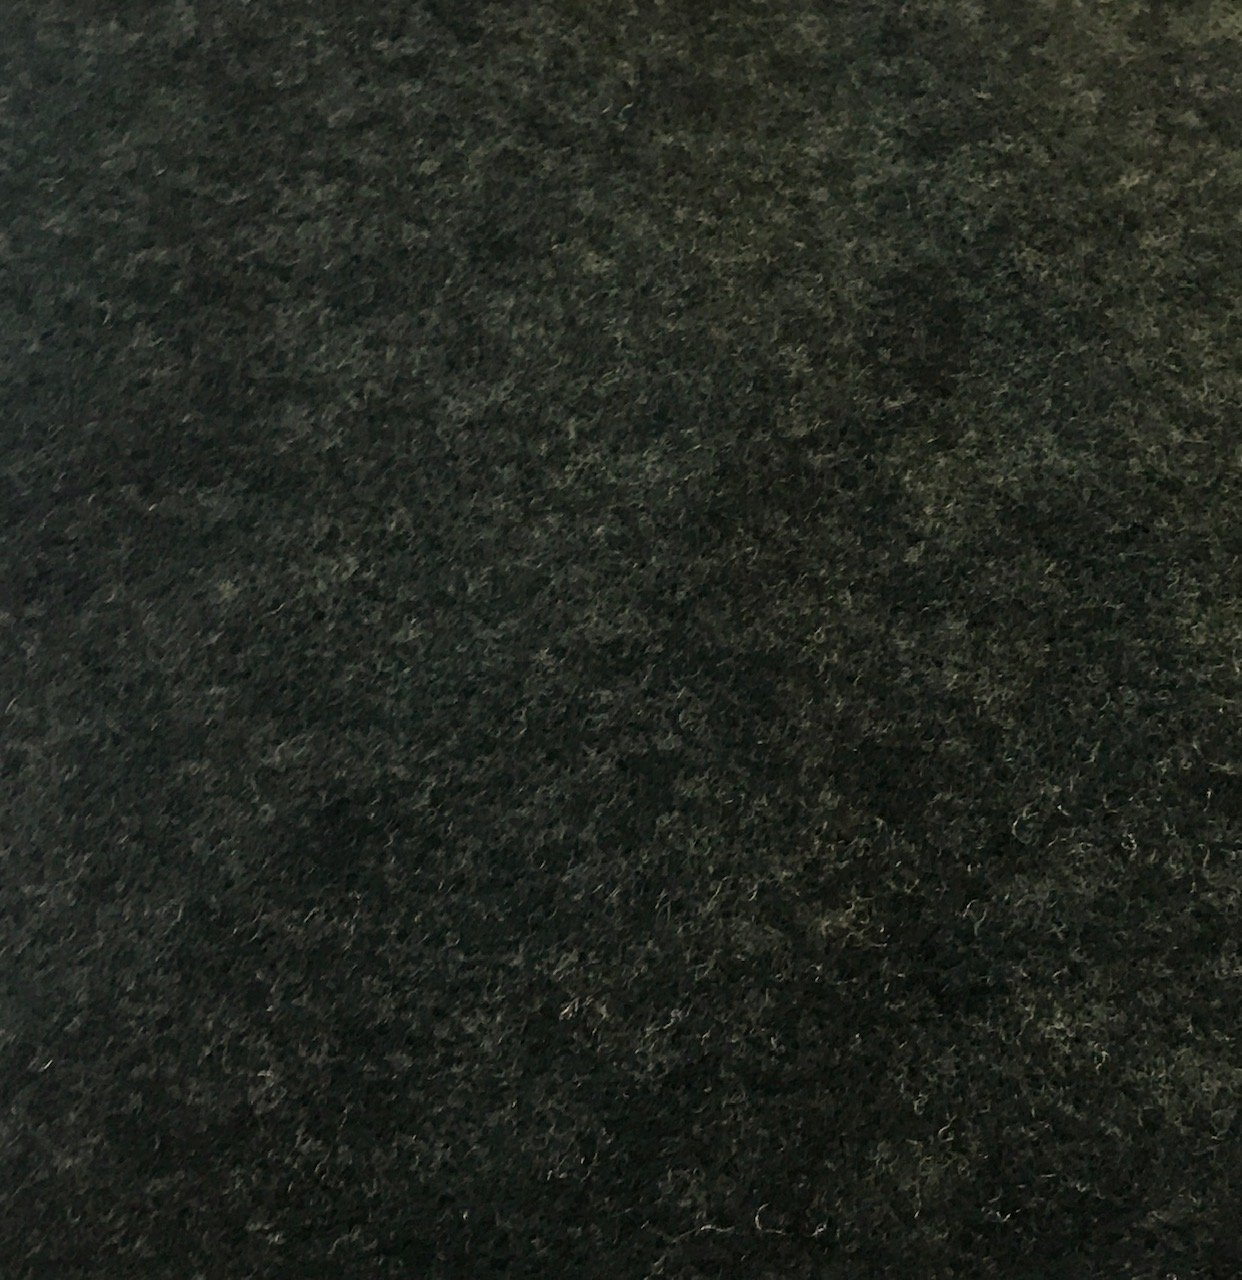 Polyester Wool Blend - Heather Forest Green